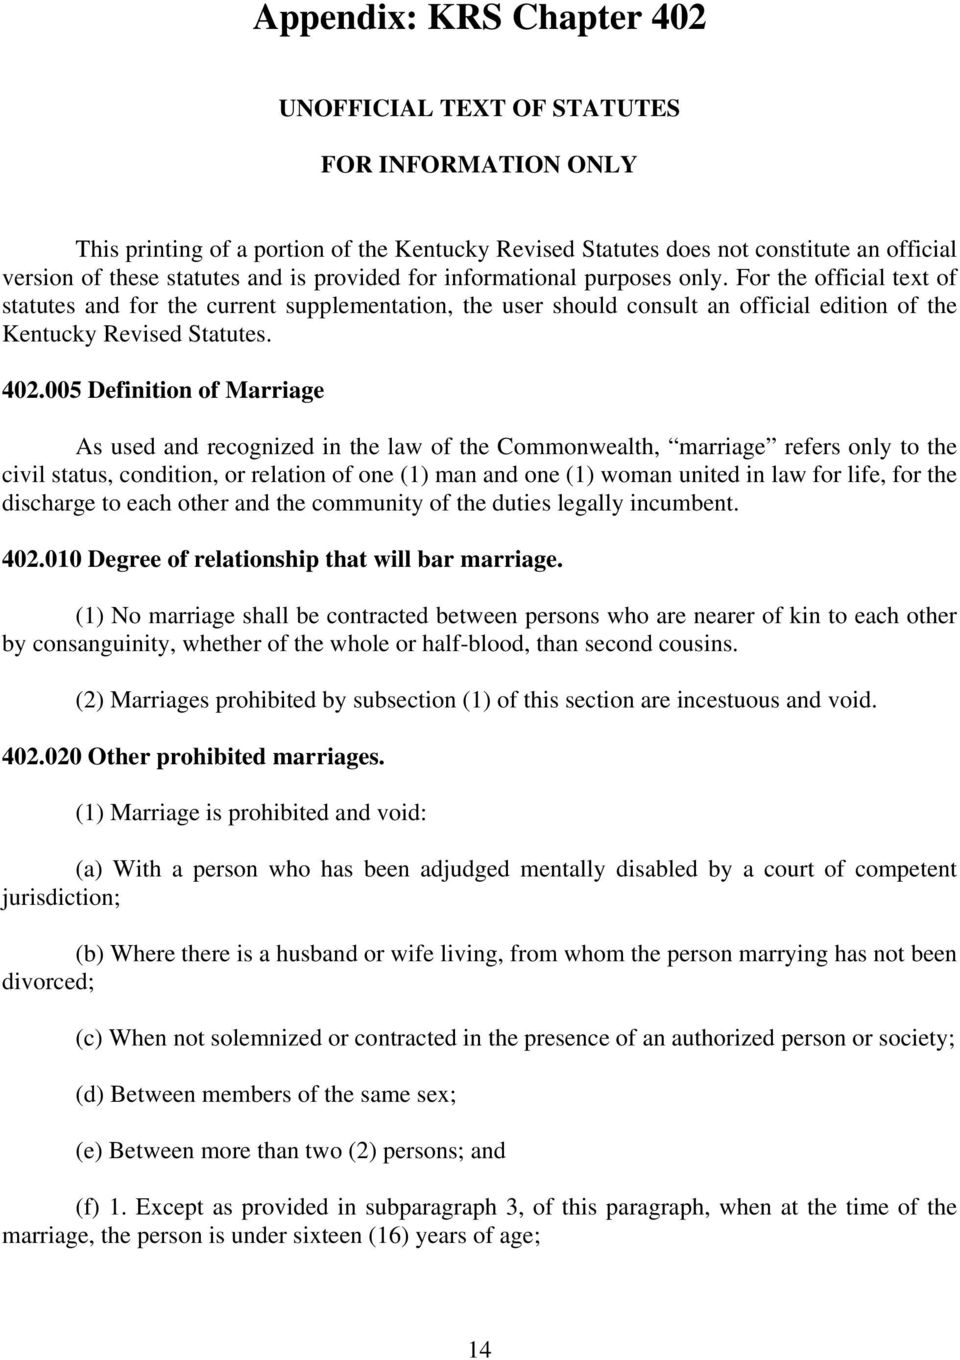 005 Definition of Marriage As used and recognized in the law of the Commonwealth, marriage refers only to the civil status, condition, or relation of one (1) man and one (1) woman united in law for